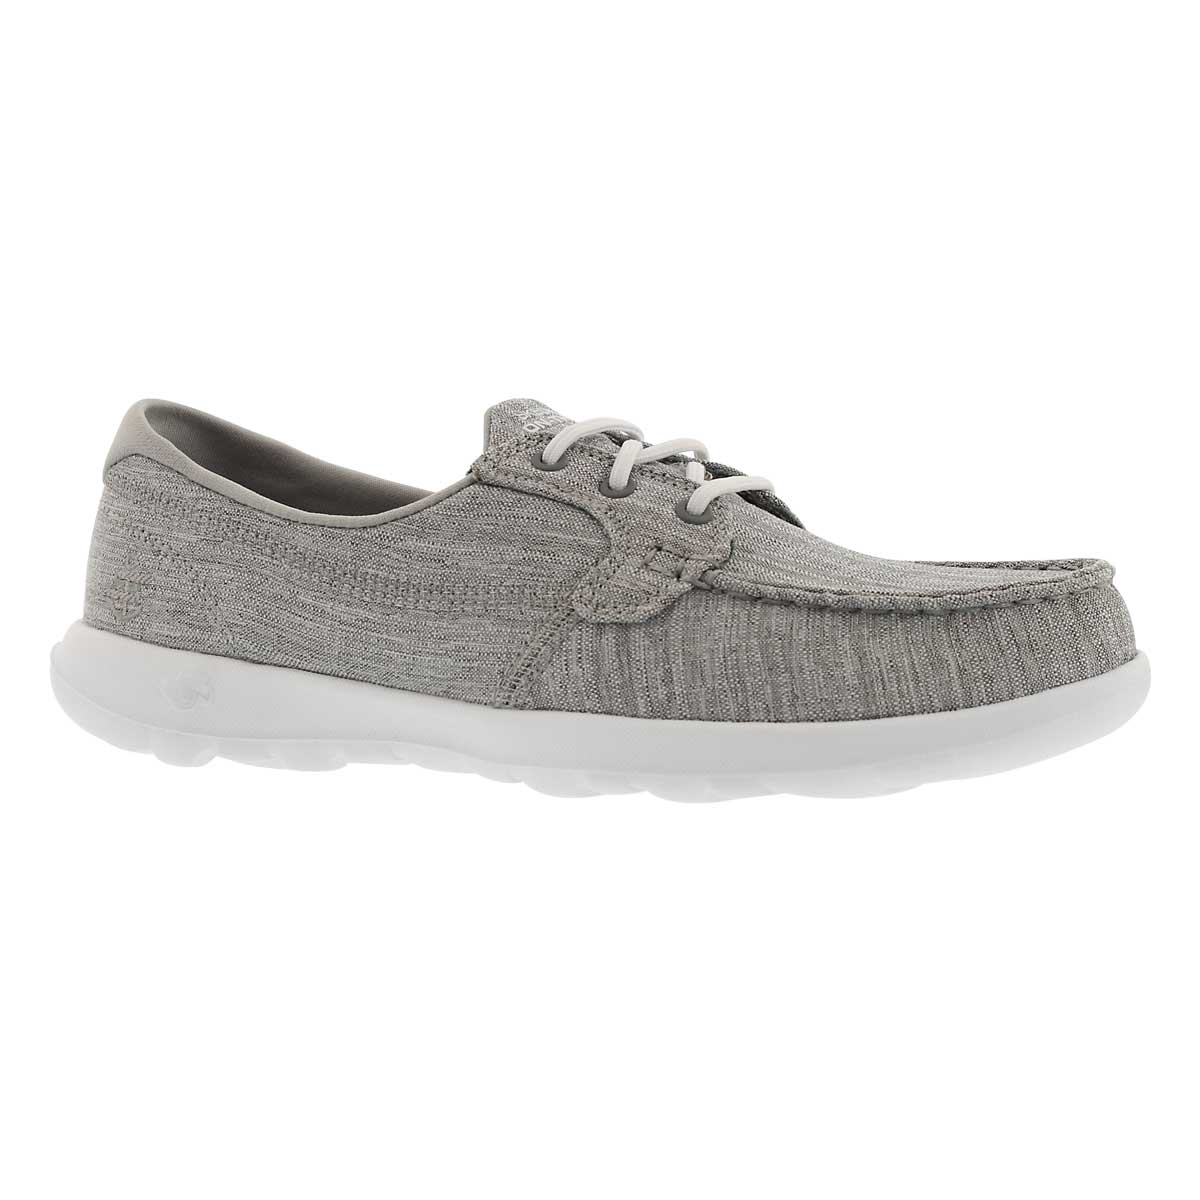 Women's GO WALK LITE grey boat shoes